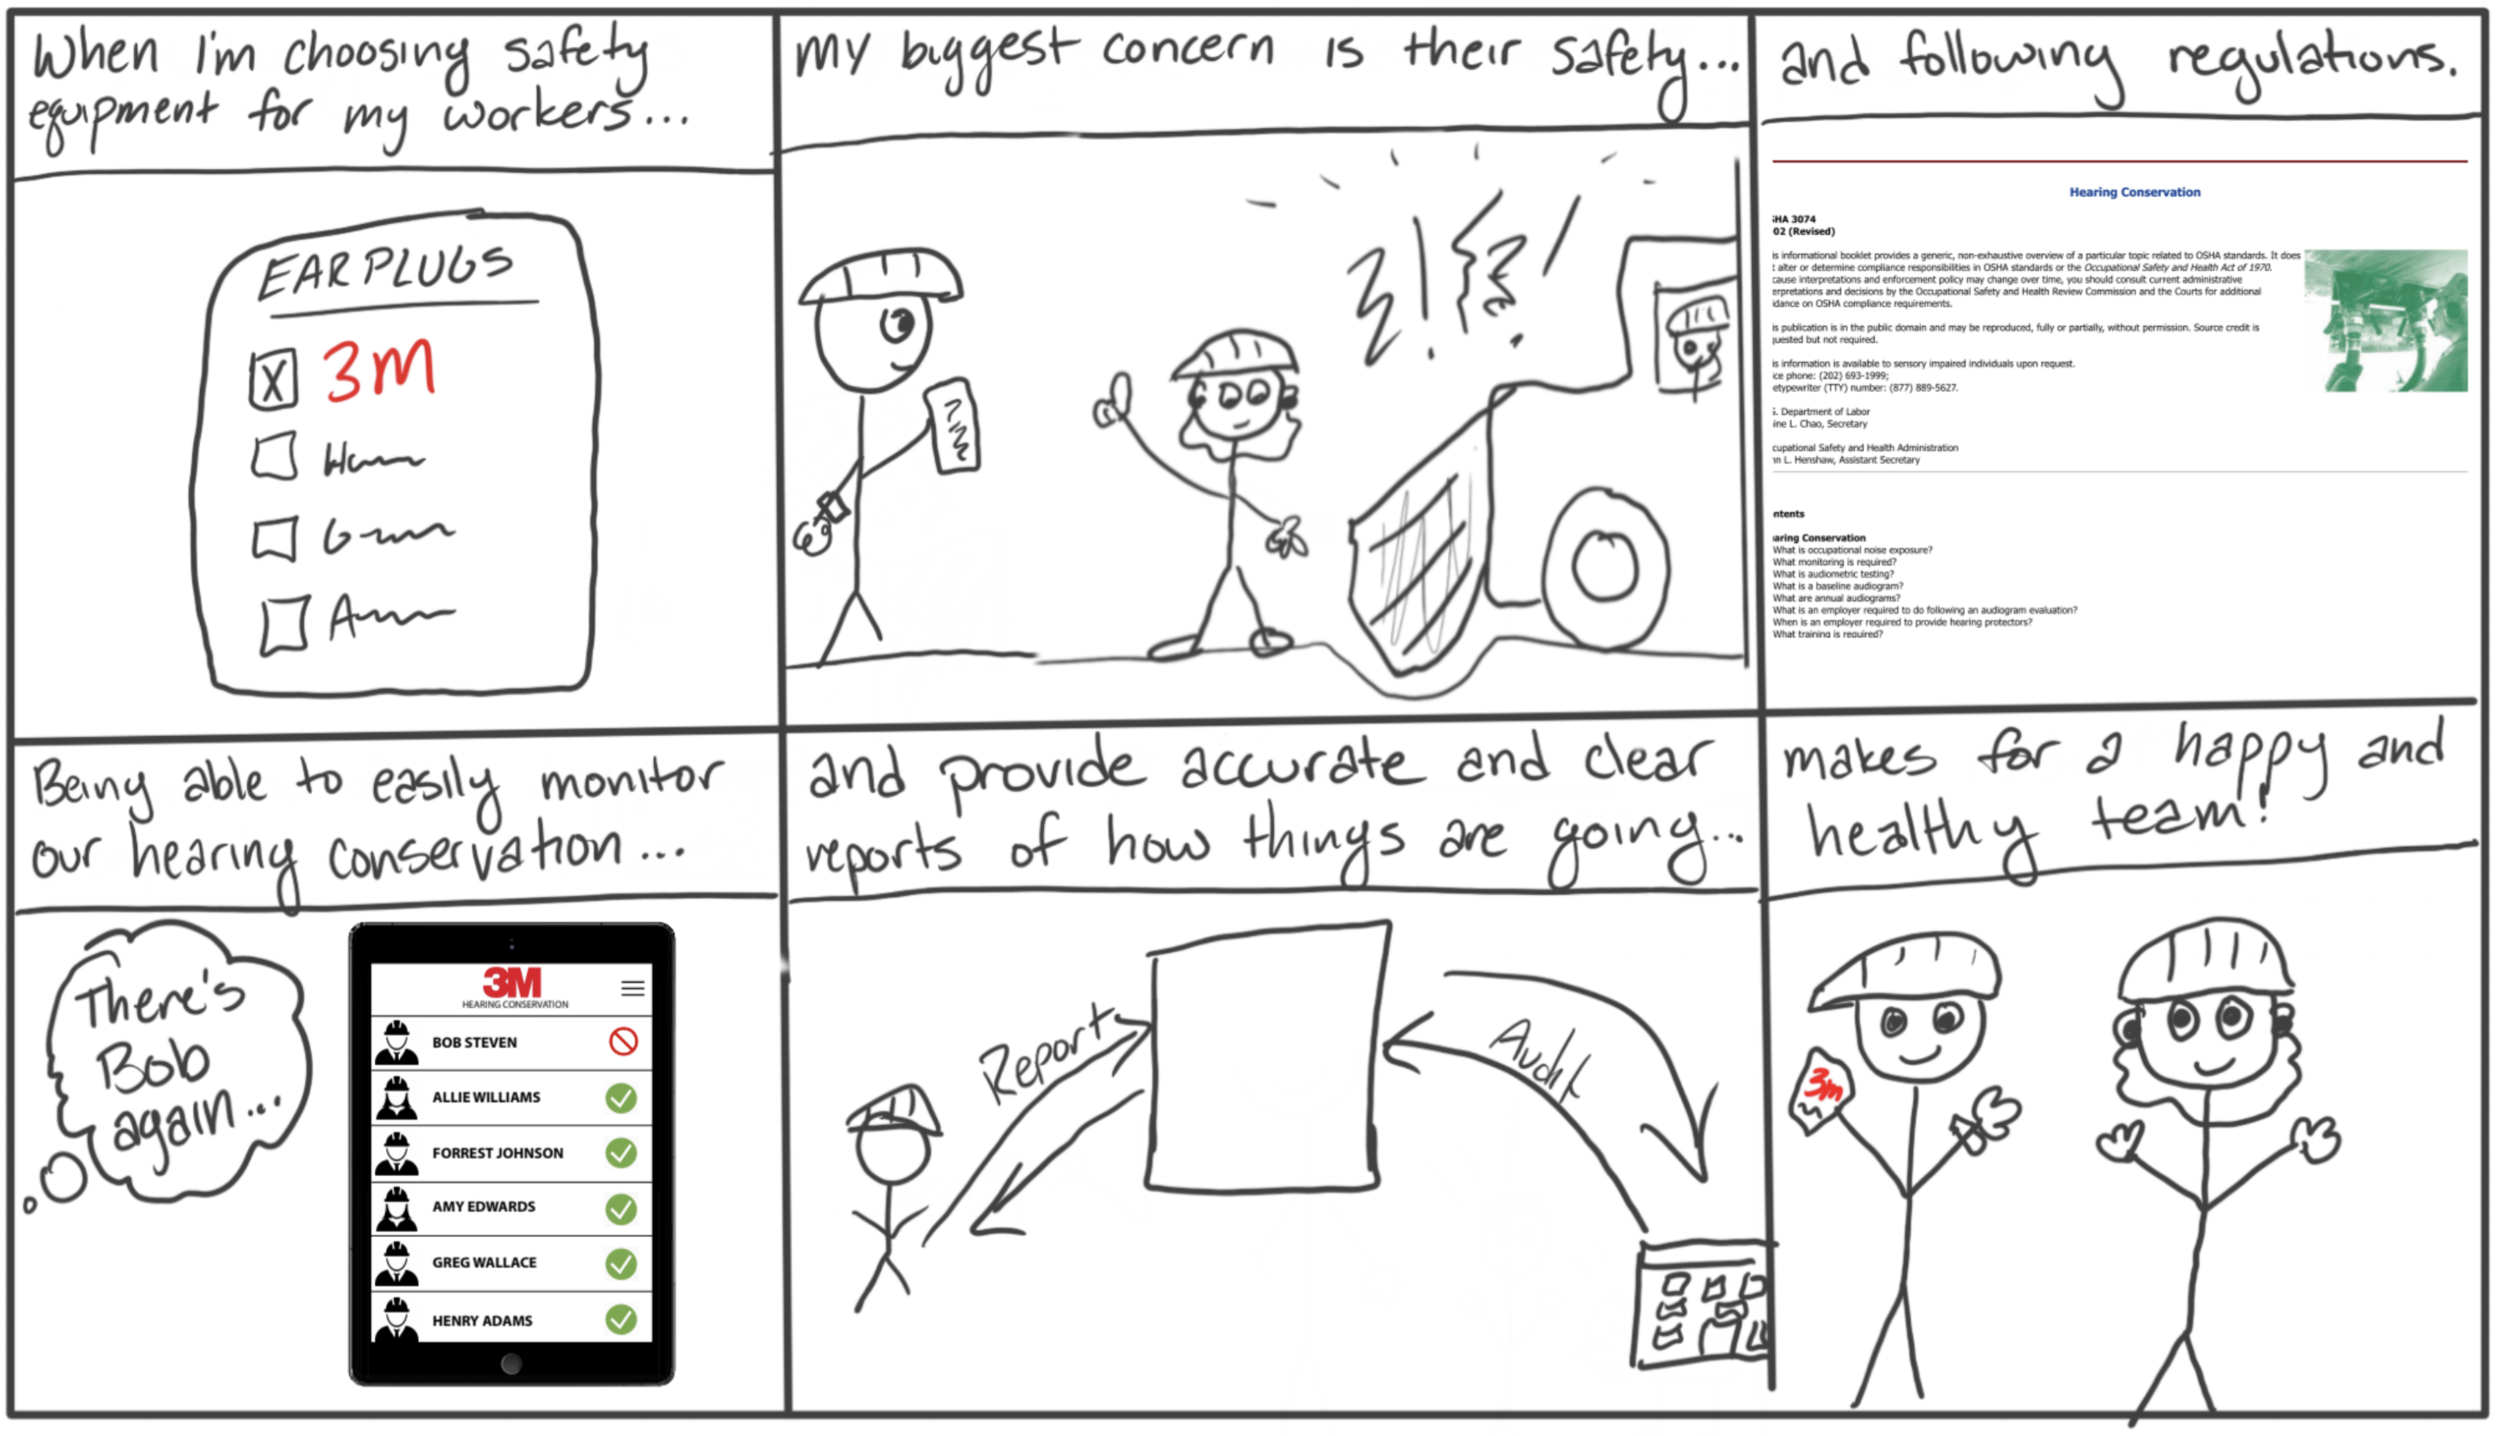 Storyboards were created to help communicate future states of the user experience. These scenarios help visually predict and explore the user's experience with the 3M app and Smart Sound Earplugs.